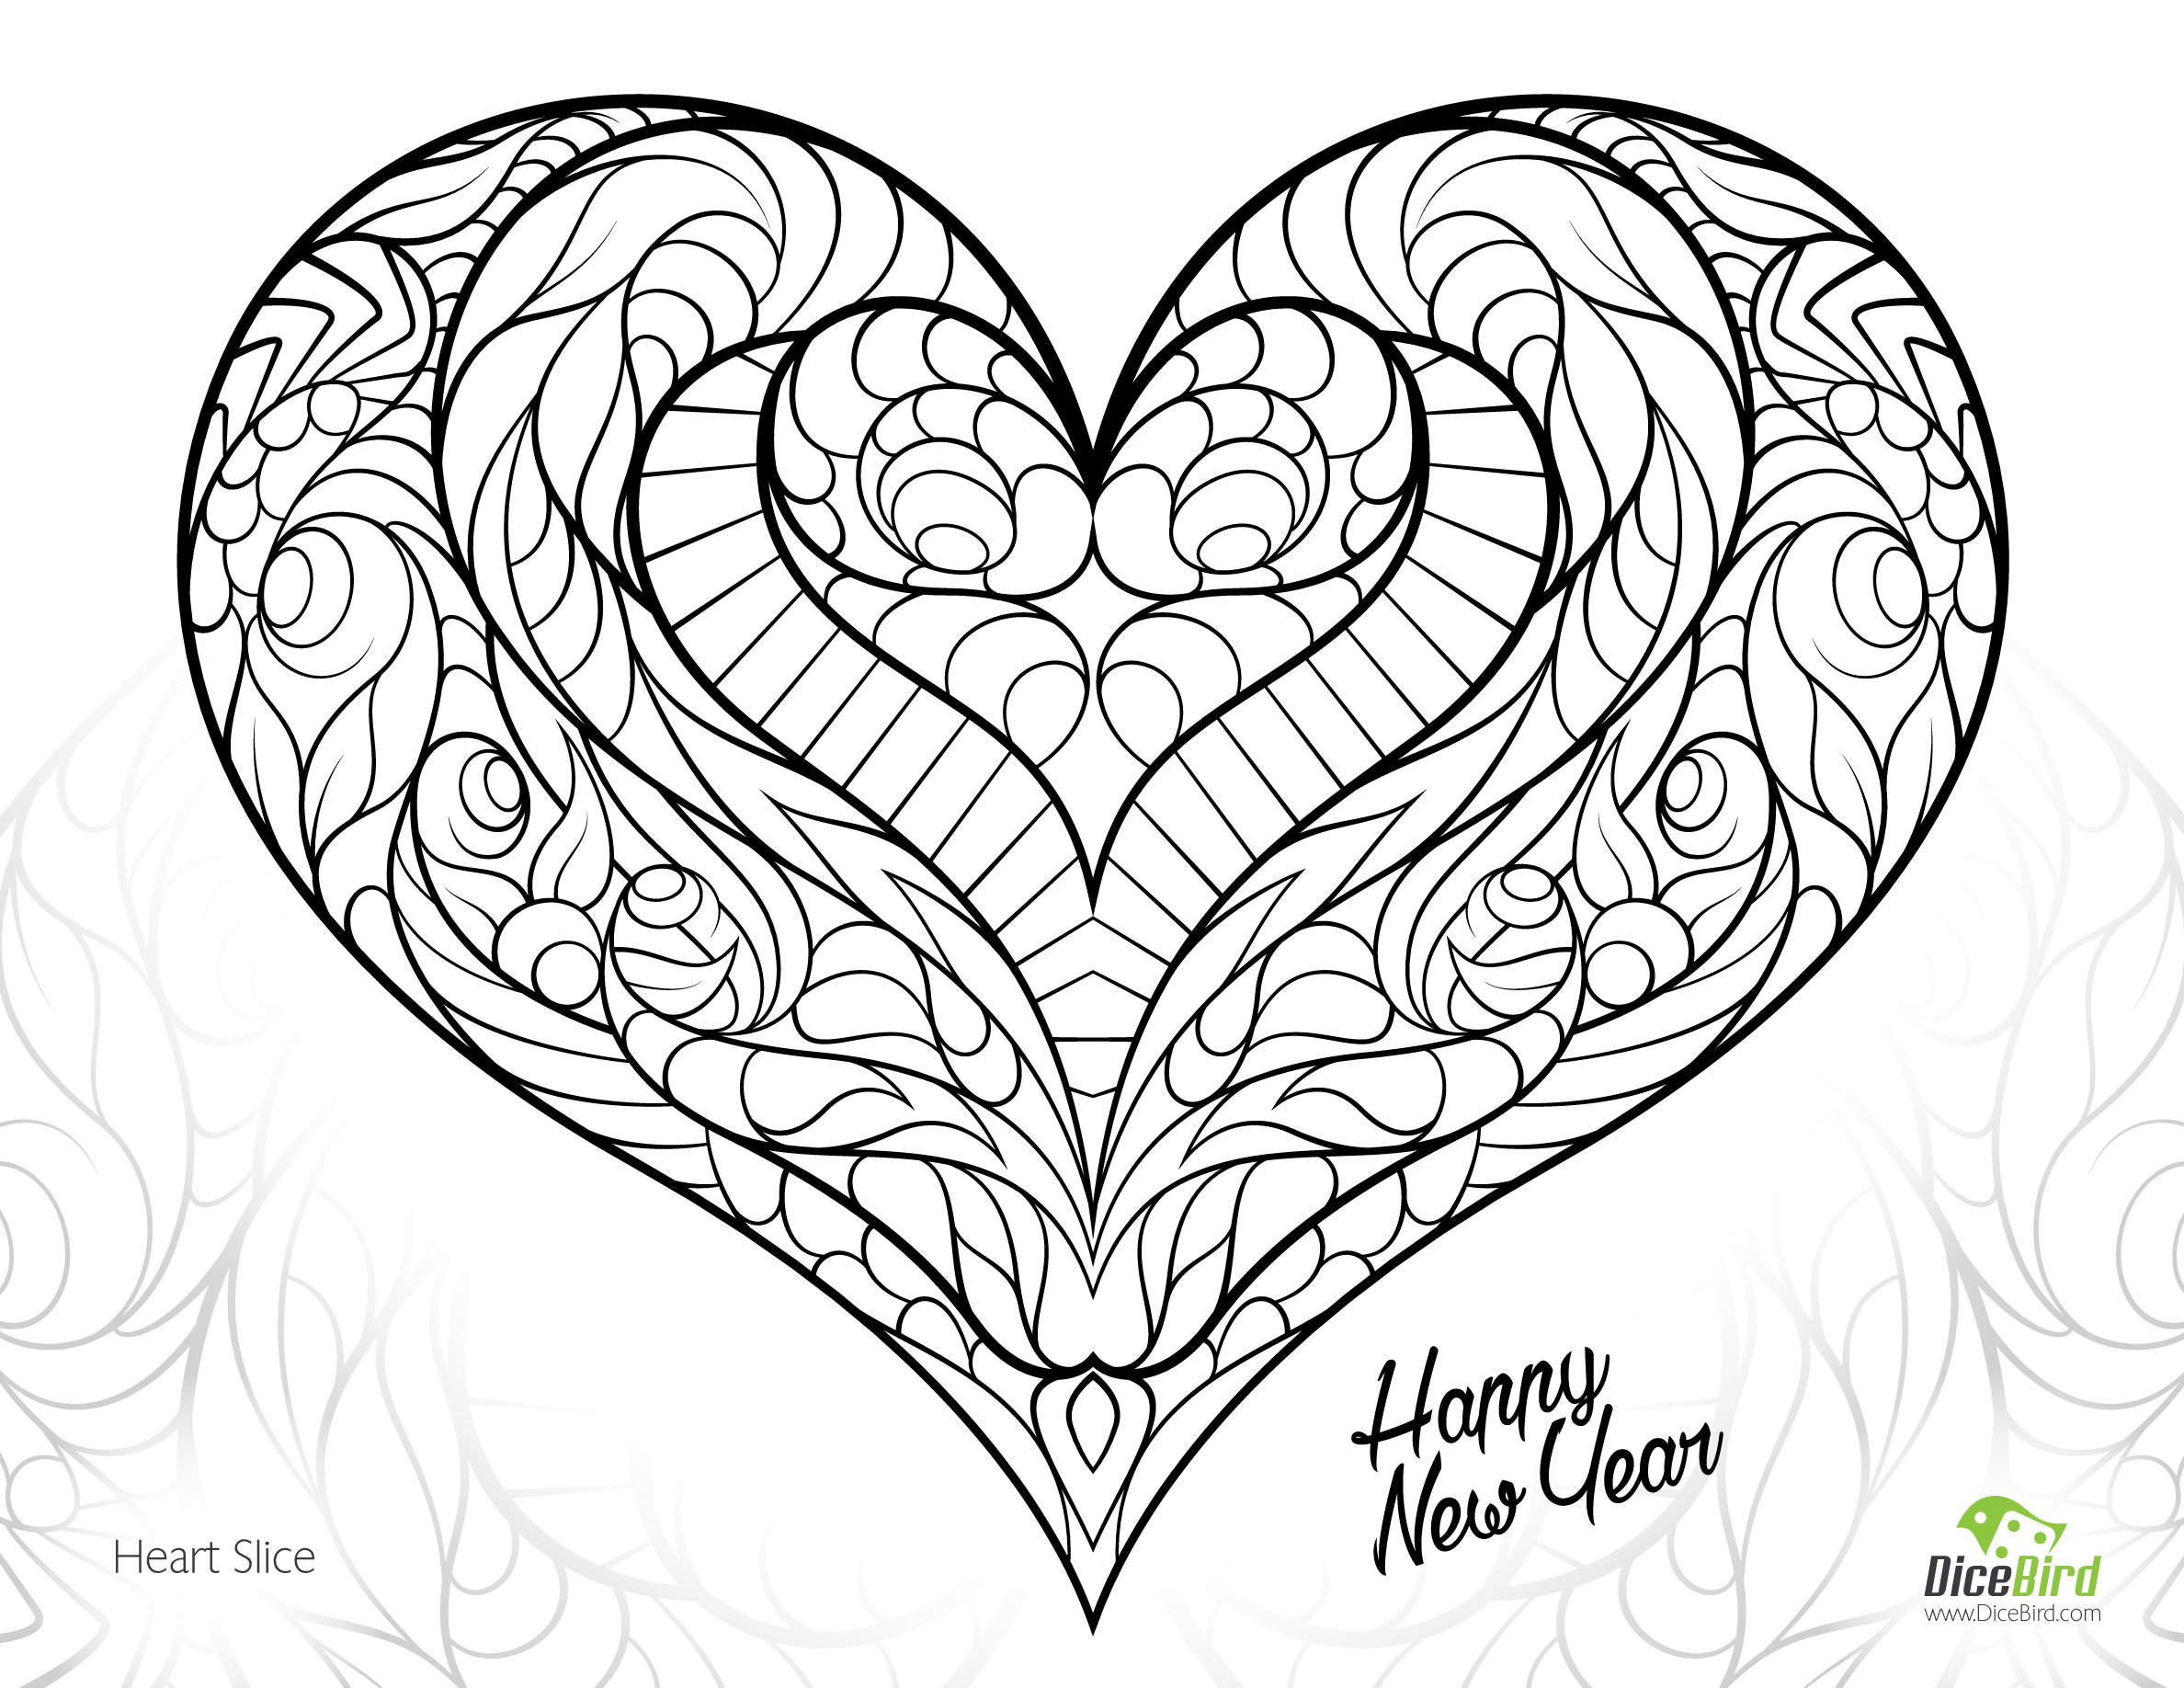 coloring pages for adults heart coloring page heart printable download love colouring adults for pages heart coloring